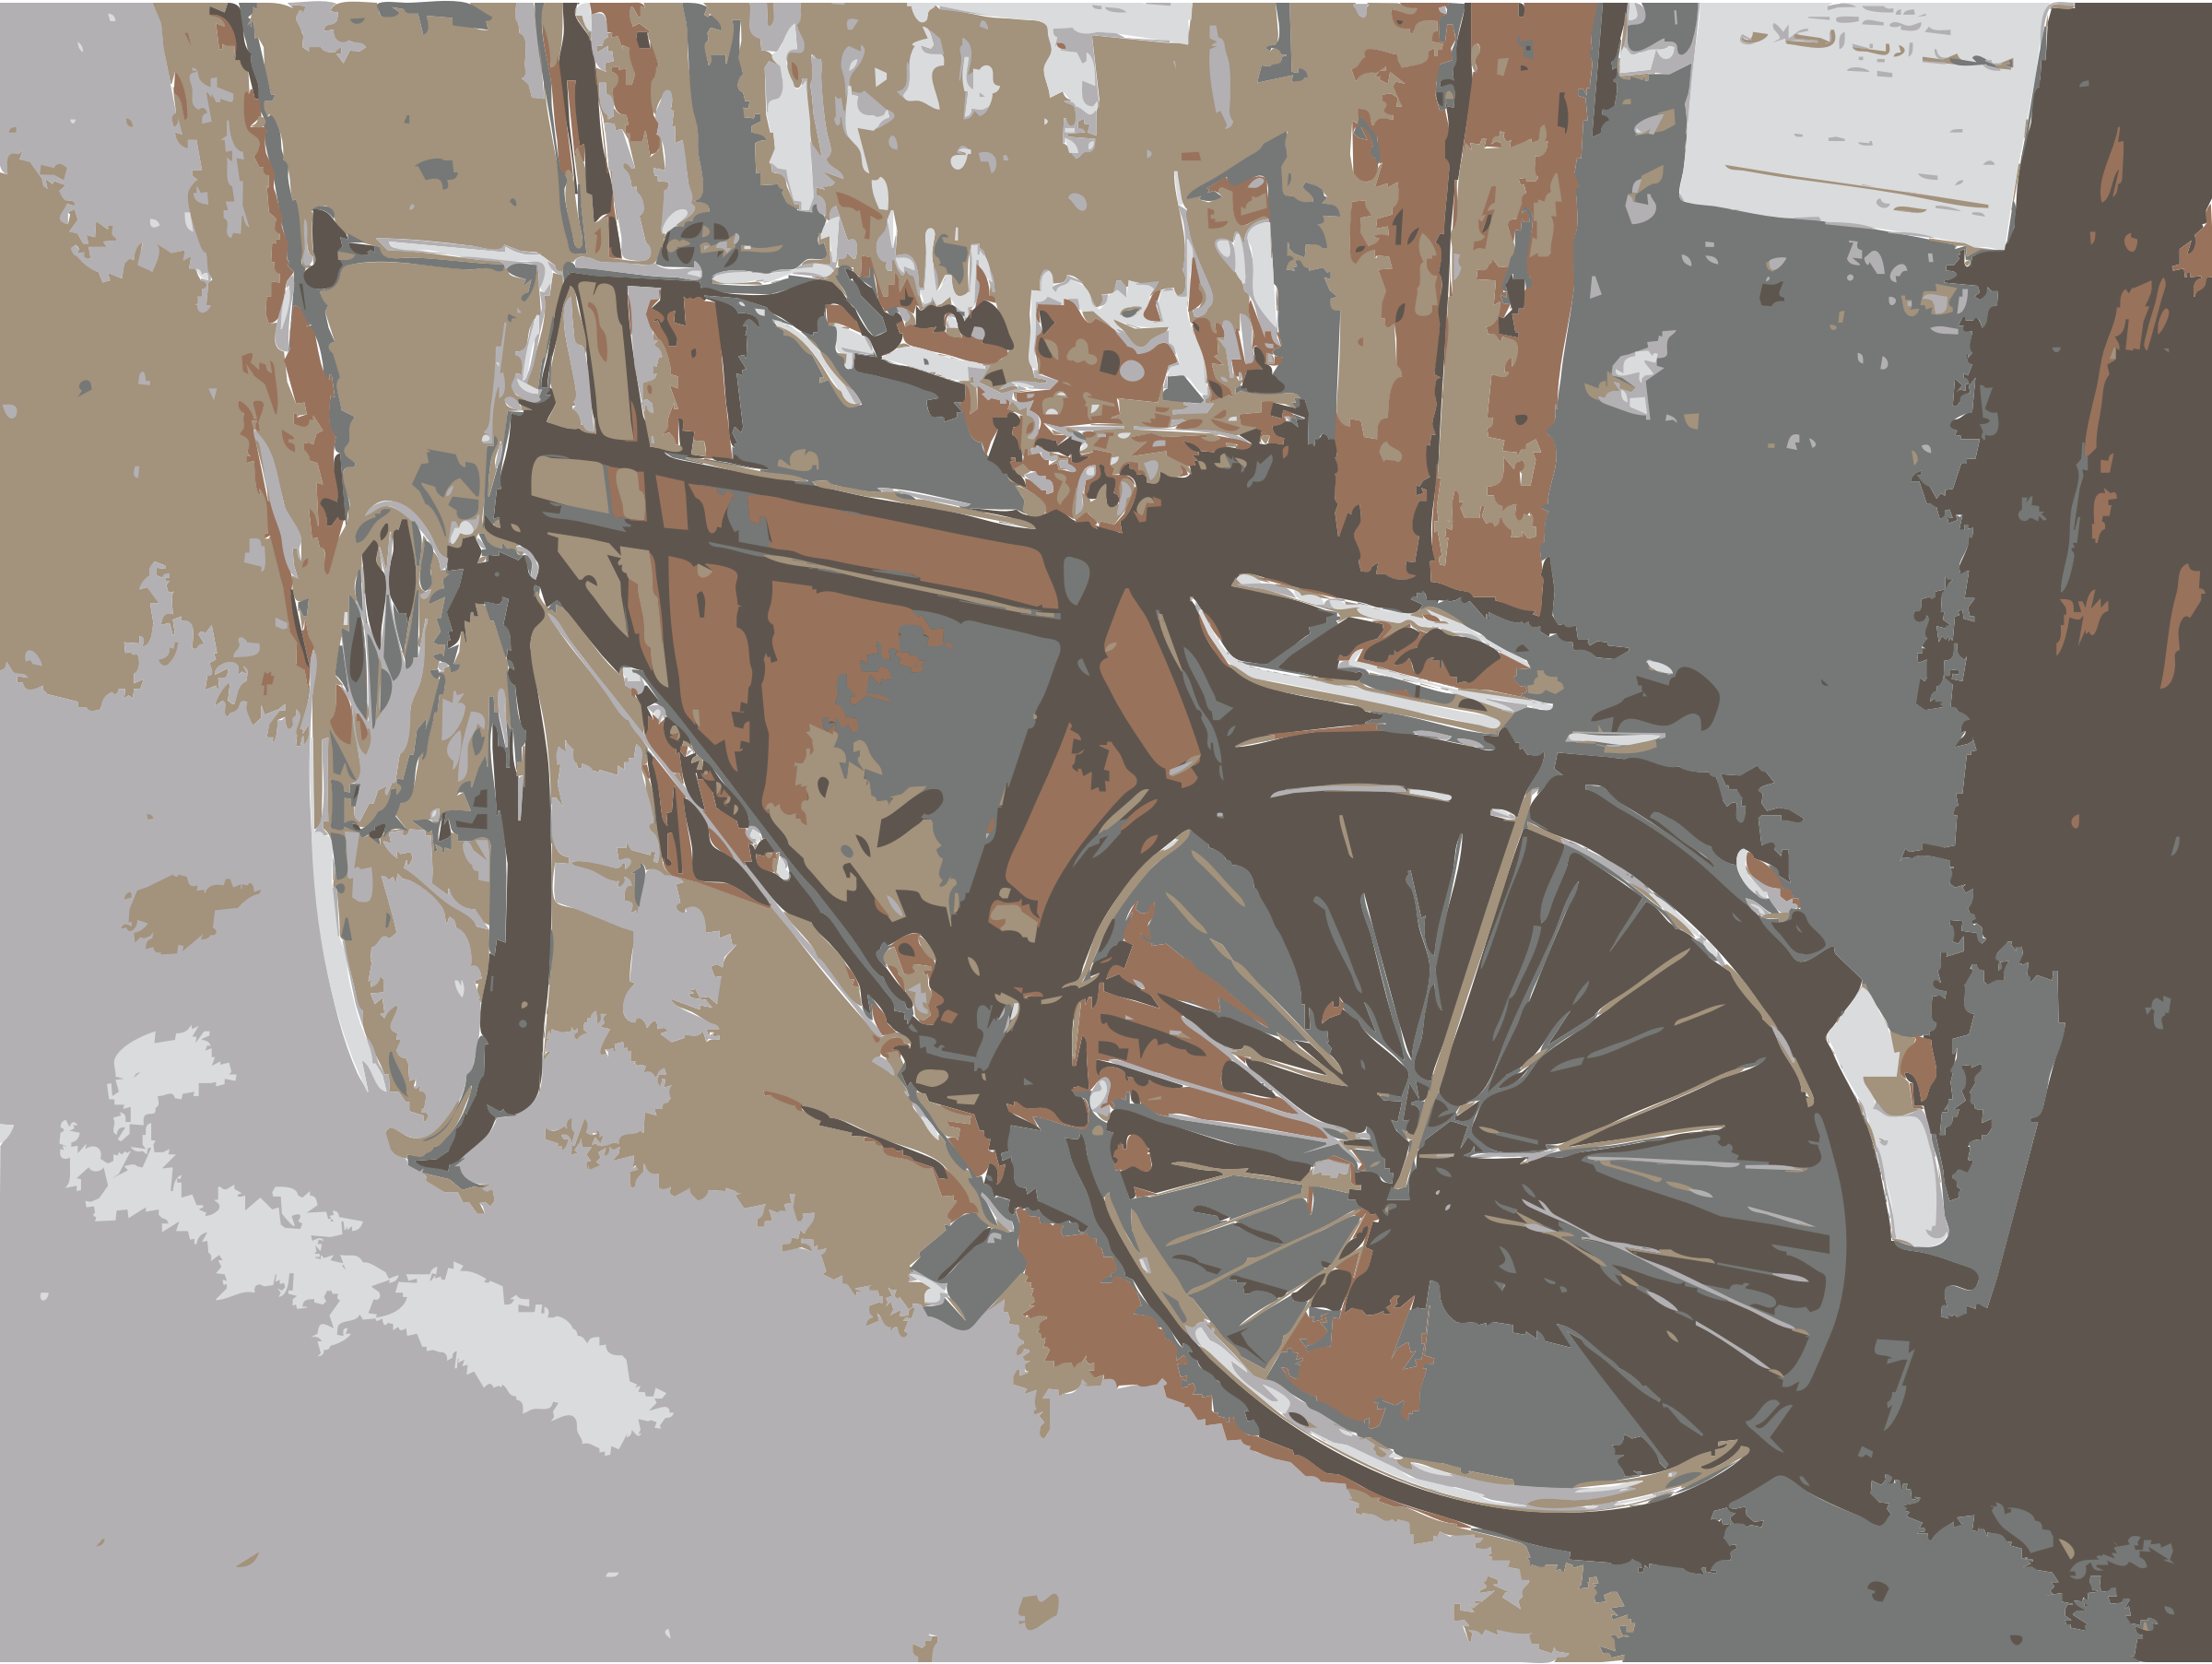 Chinese Bike Found in Damascus by rejon